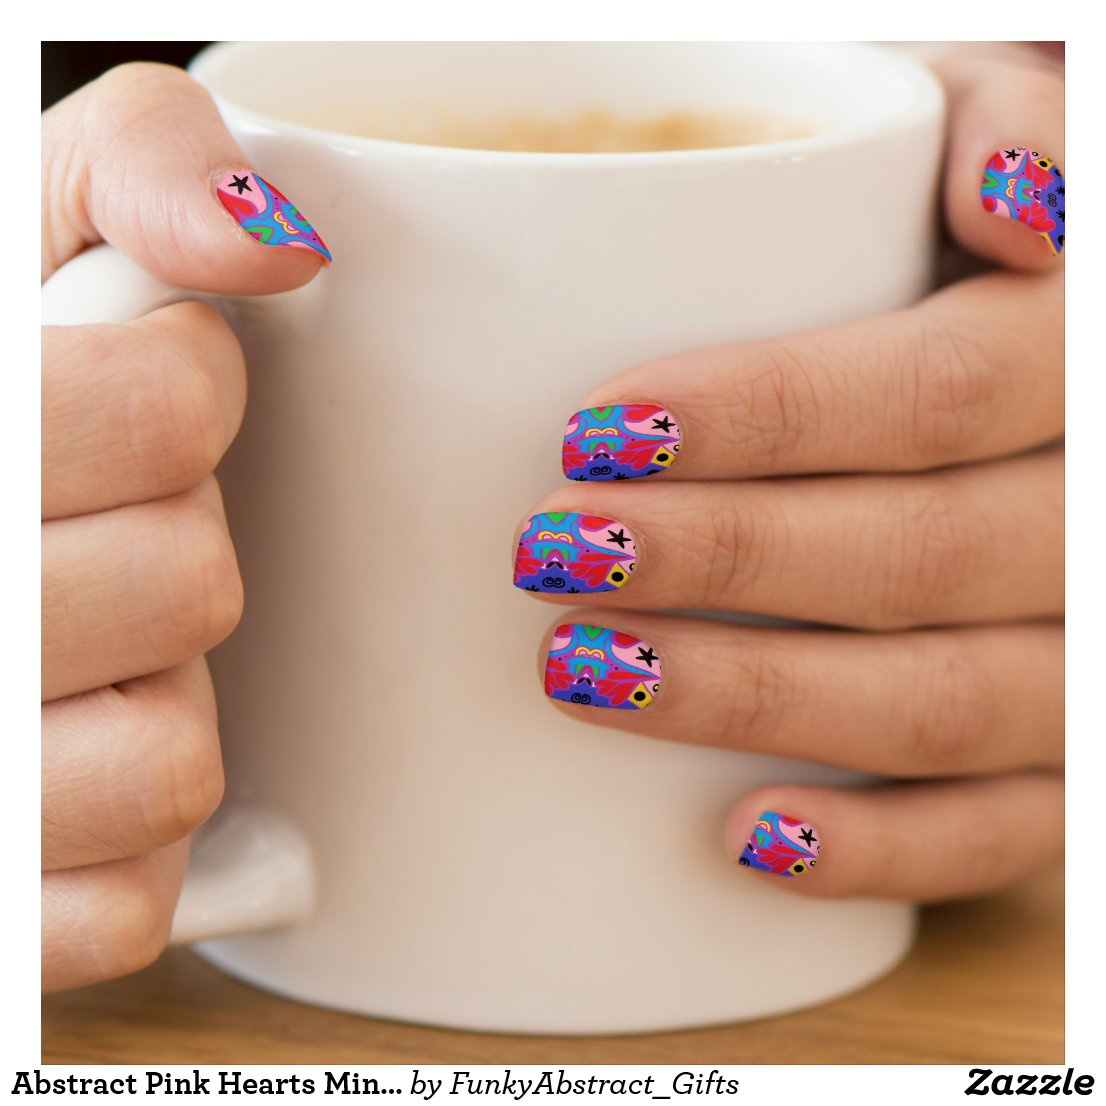 Abstract Pink Hearts Minx Nail Art Decal